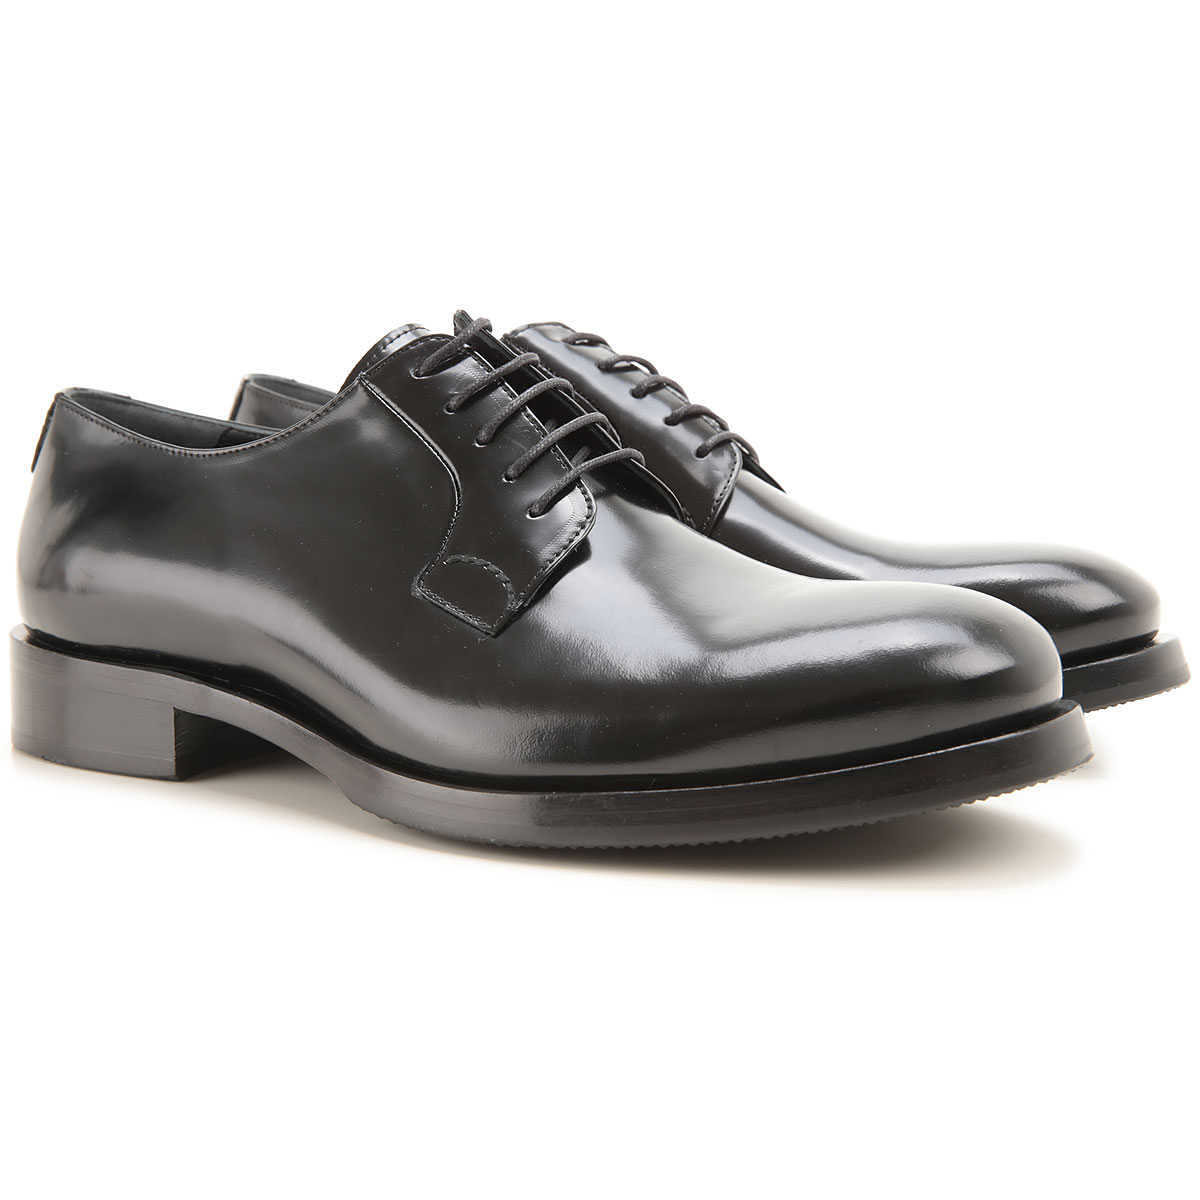 Karl Lagerfeld Lace Up Shoes for Men Oxfords10 Derbies and Brogues On Sale UK - GOOFASH